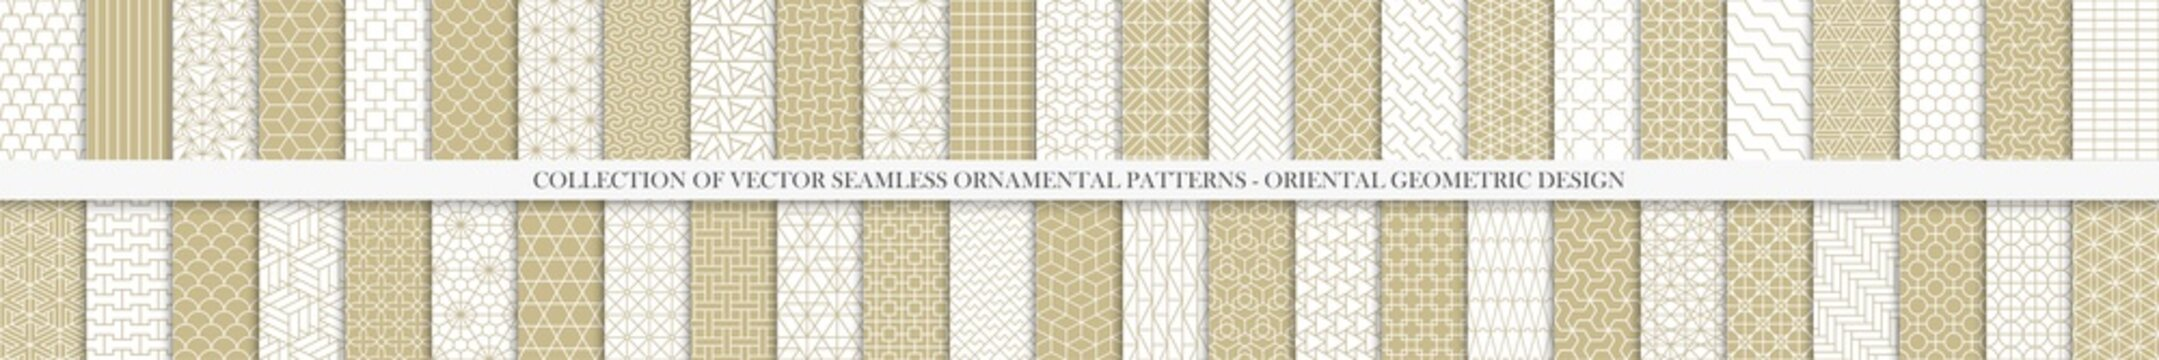 Collection of seamless geometric ornamental vector patterns. Grid oriental backgrounds. Vintage white and beige design